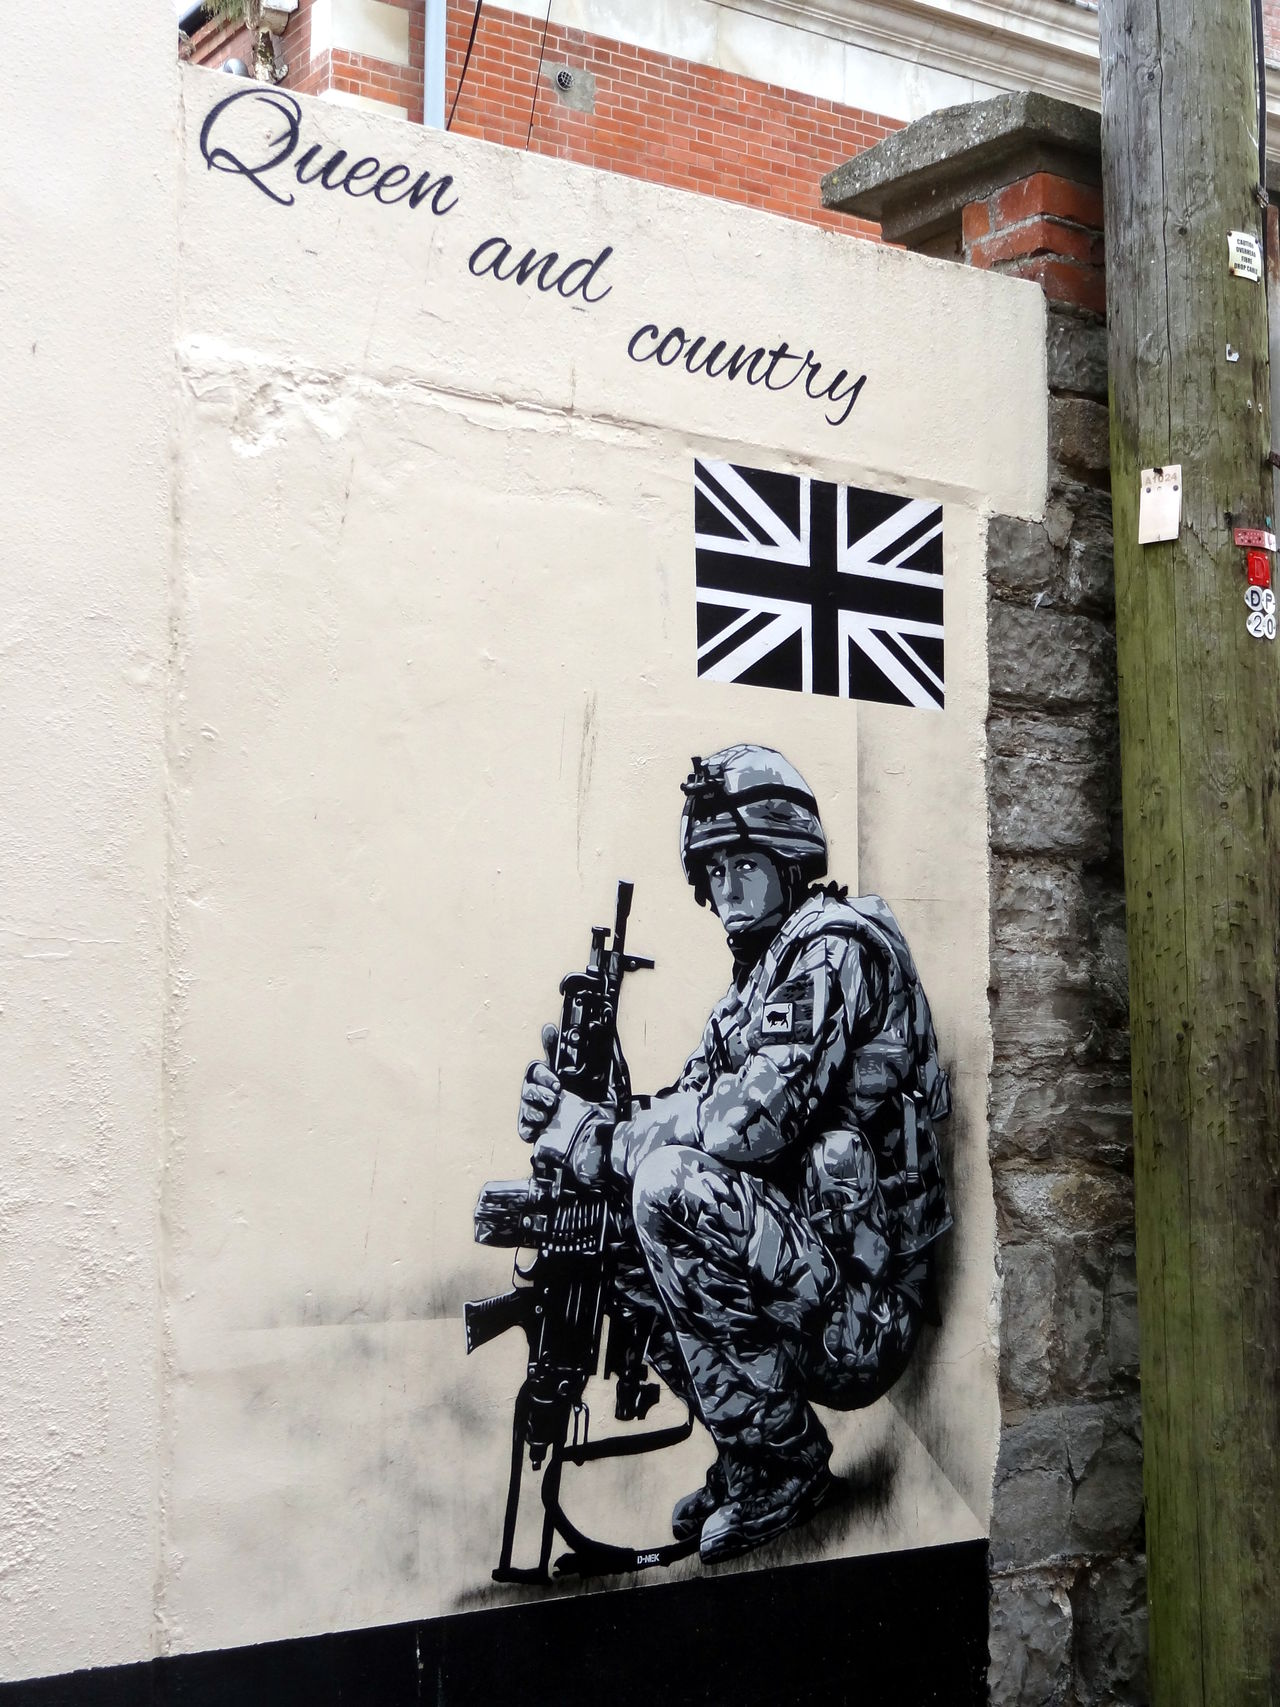 one the the many spray jam pieces around town - 2016 Army Army Soldier Country Forces Queen Service Soldier Spray Jam Sprayart Spraypaint Stencil Stencil Art